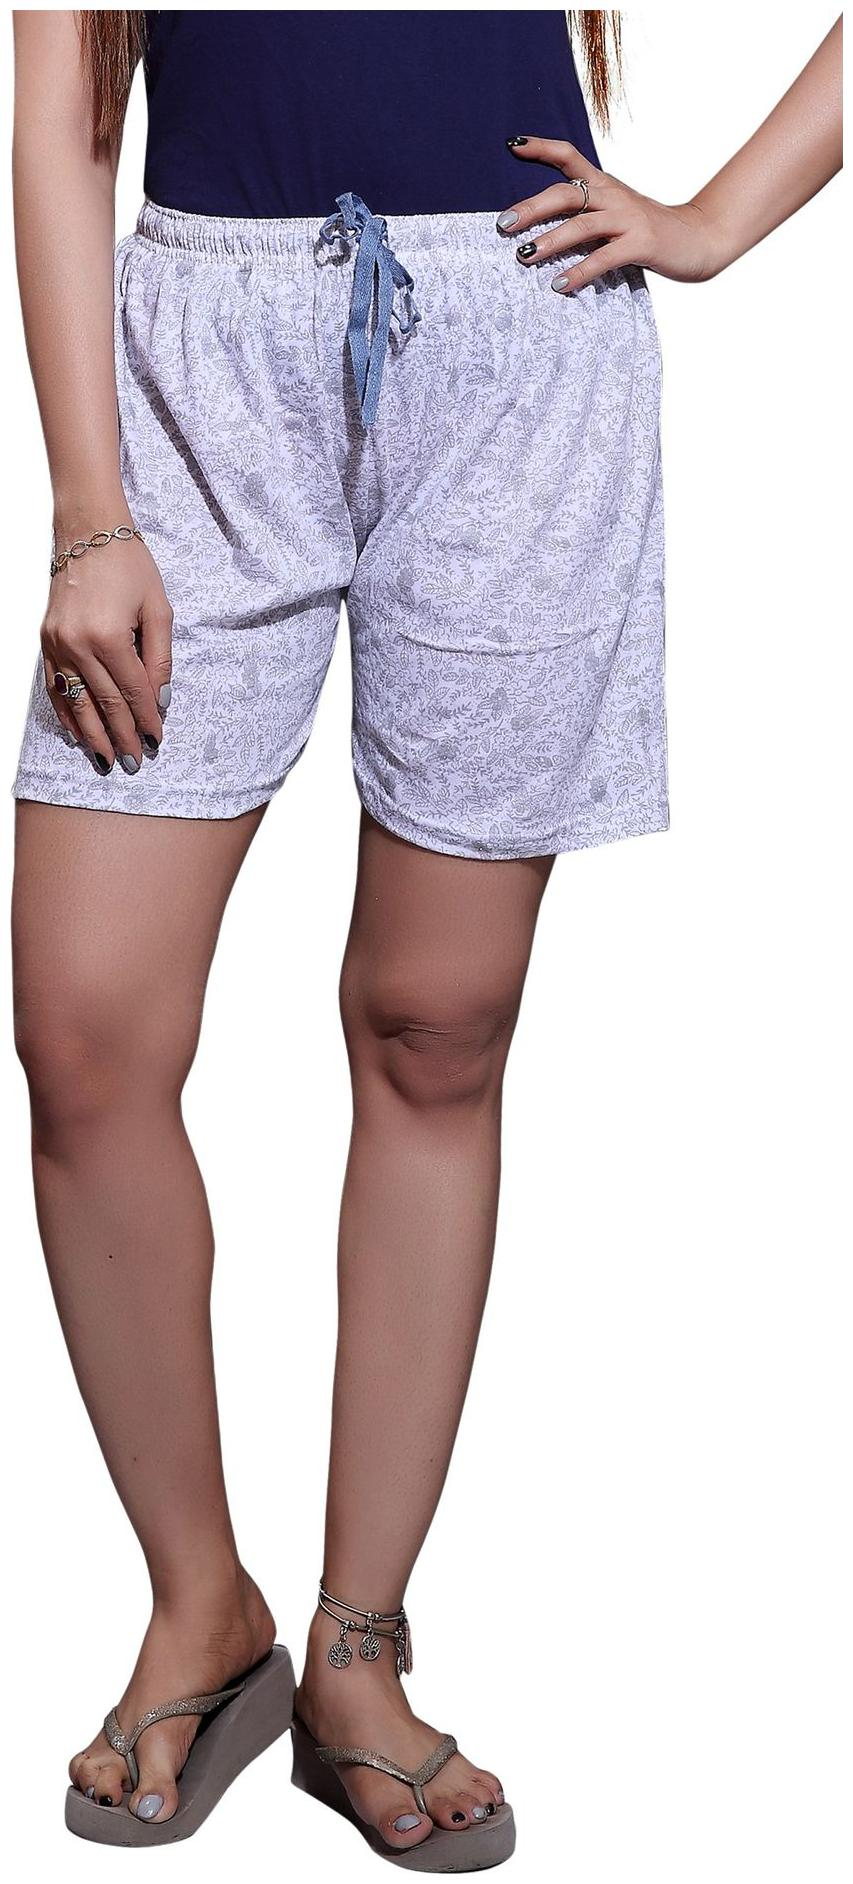 https://assetscdn1.paytm.com/images/catalog/product/A/AP/APPBFLY-WOMEN-SBFLY112857F7DEC808/1562870768625_0..jpg